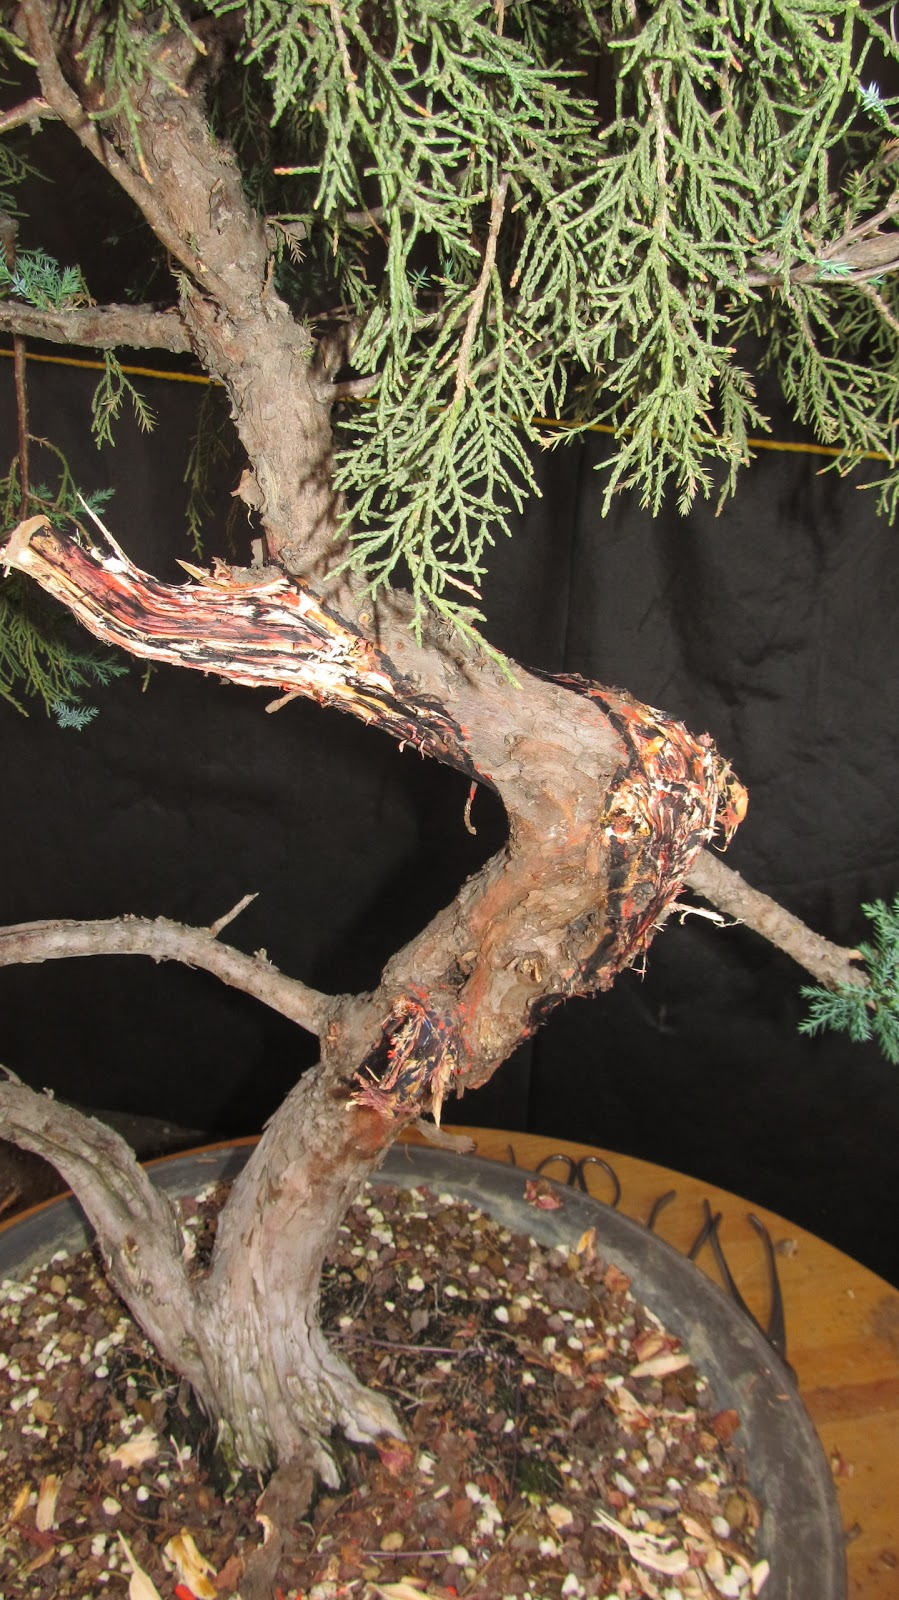 Bonsaibp39s Bonsai Blog Large Juniper Project Part 3